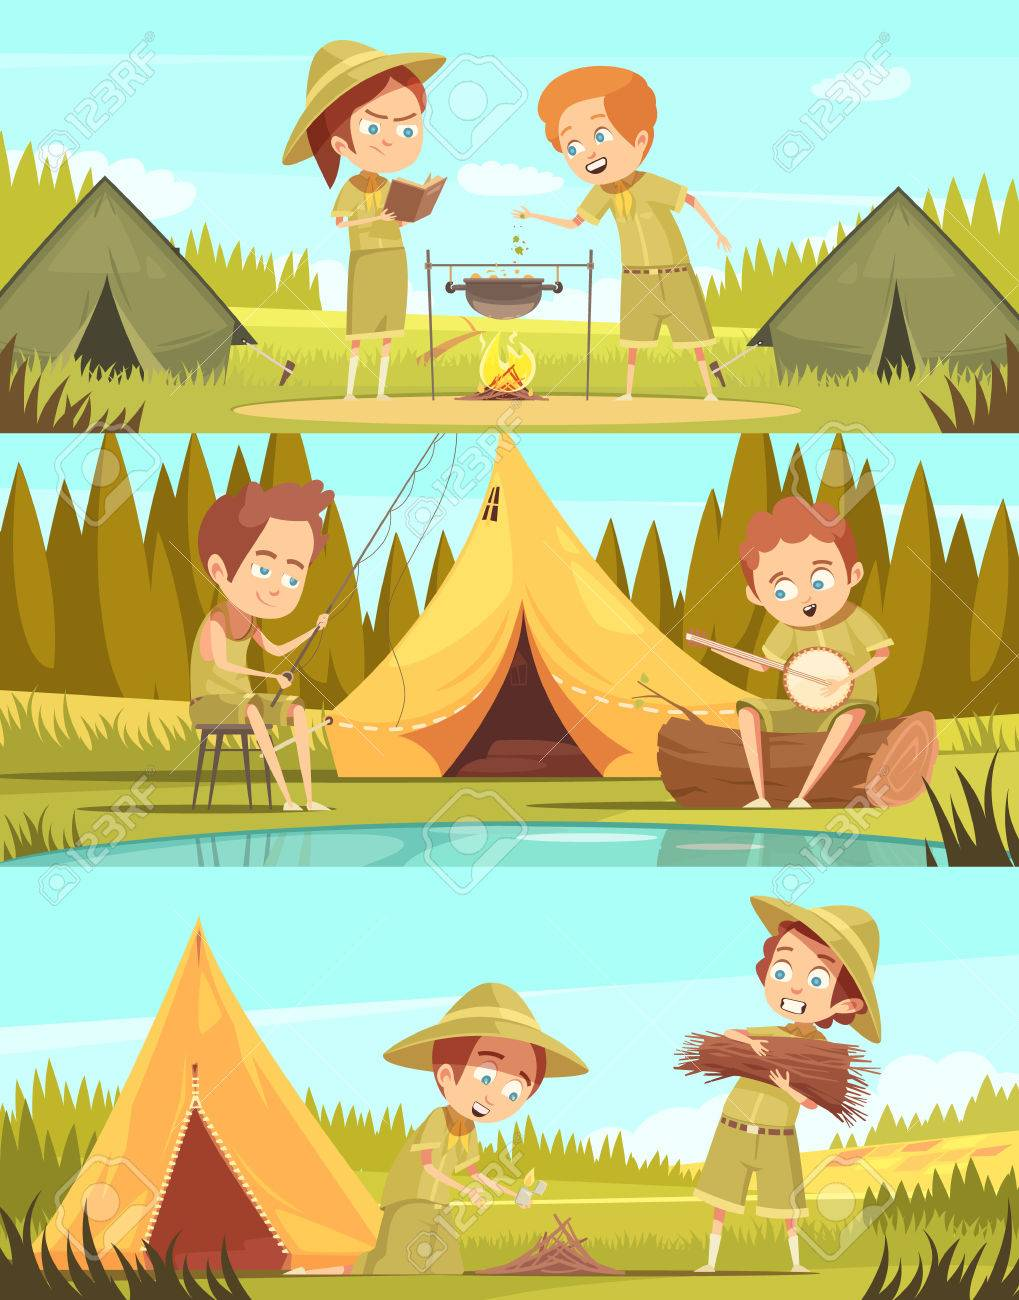 Scouting Boys Summer Camp Activities 3 Retro Cartoon Horizontal Banners Set With Campfire Cooking Isolated Vector